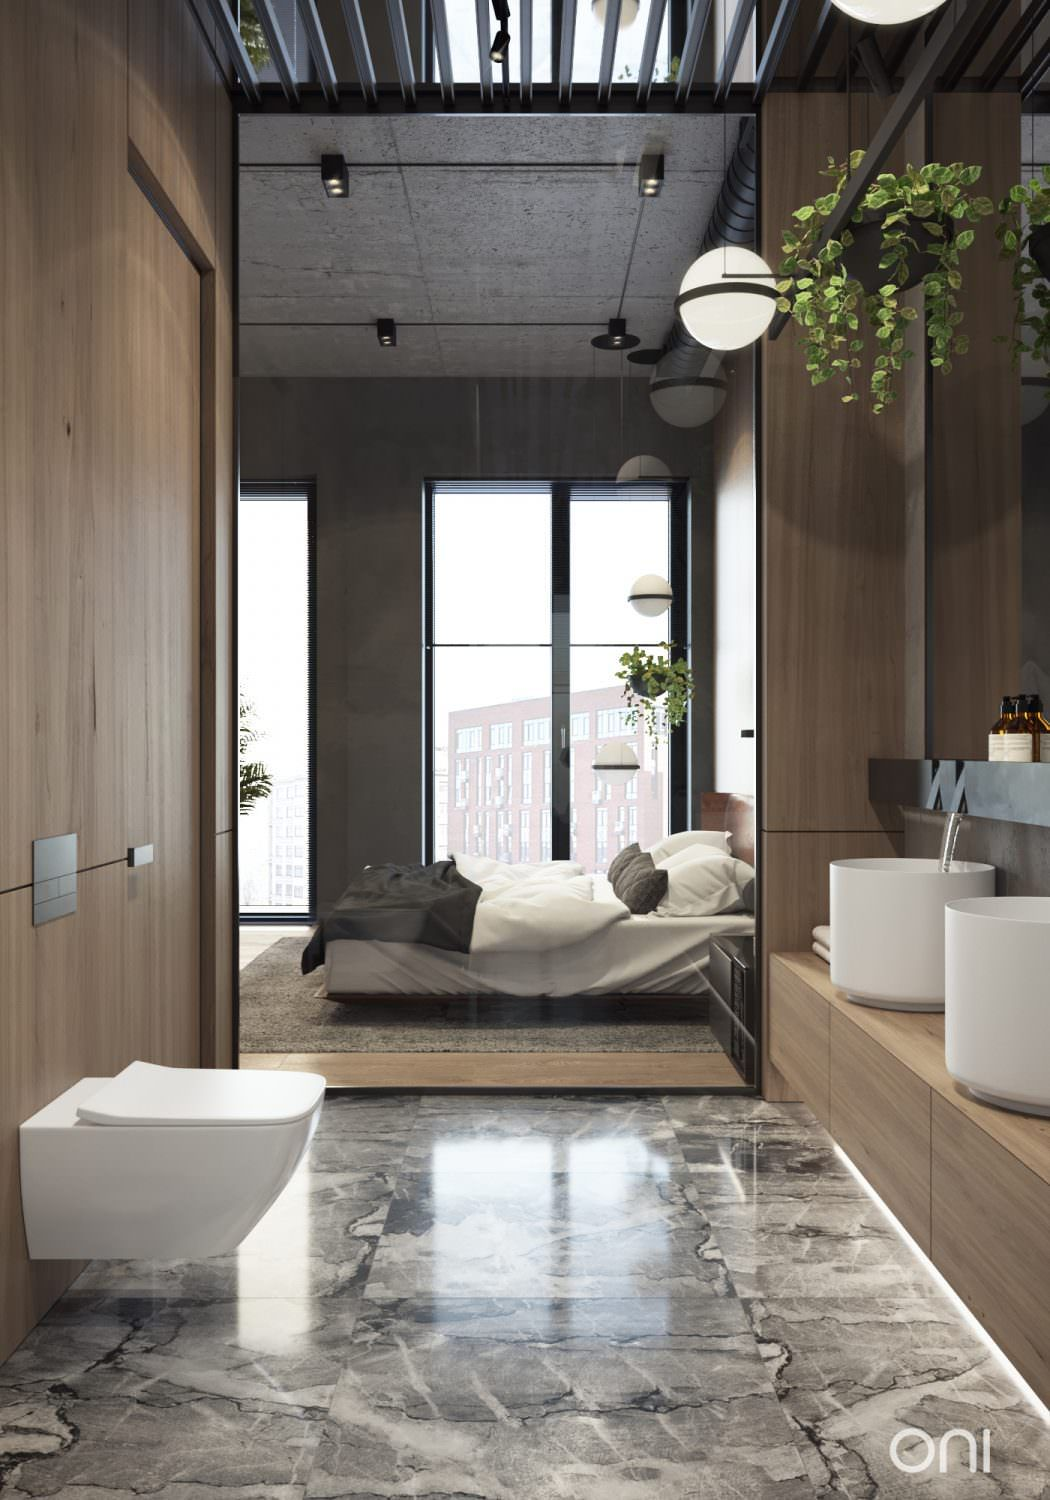 Loft bedroom and bathroom ideas  Cozy Loft by ONI Architects  HSDesign  Pinterest  Lofts Cozy